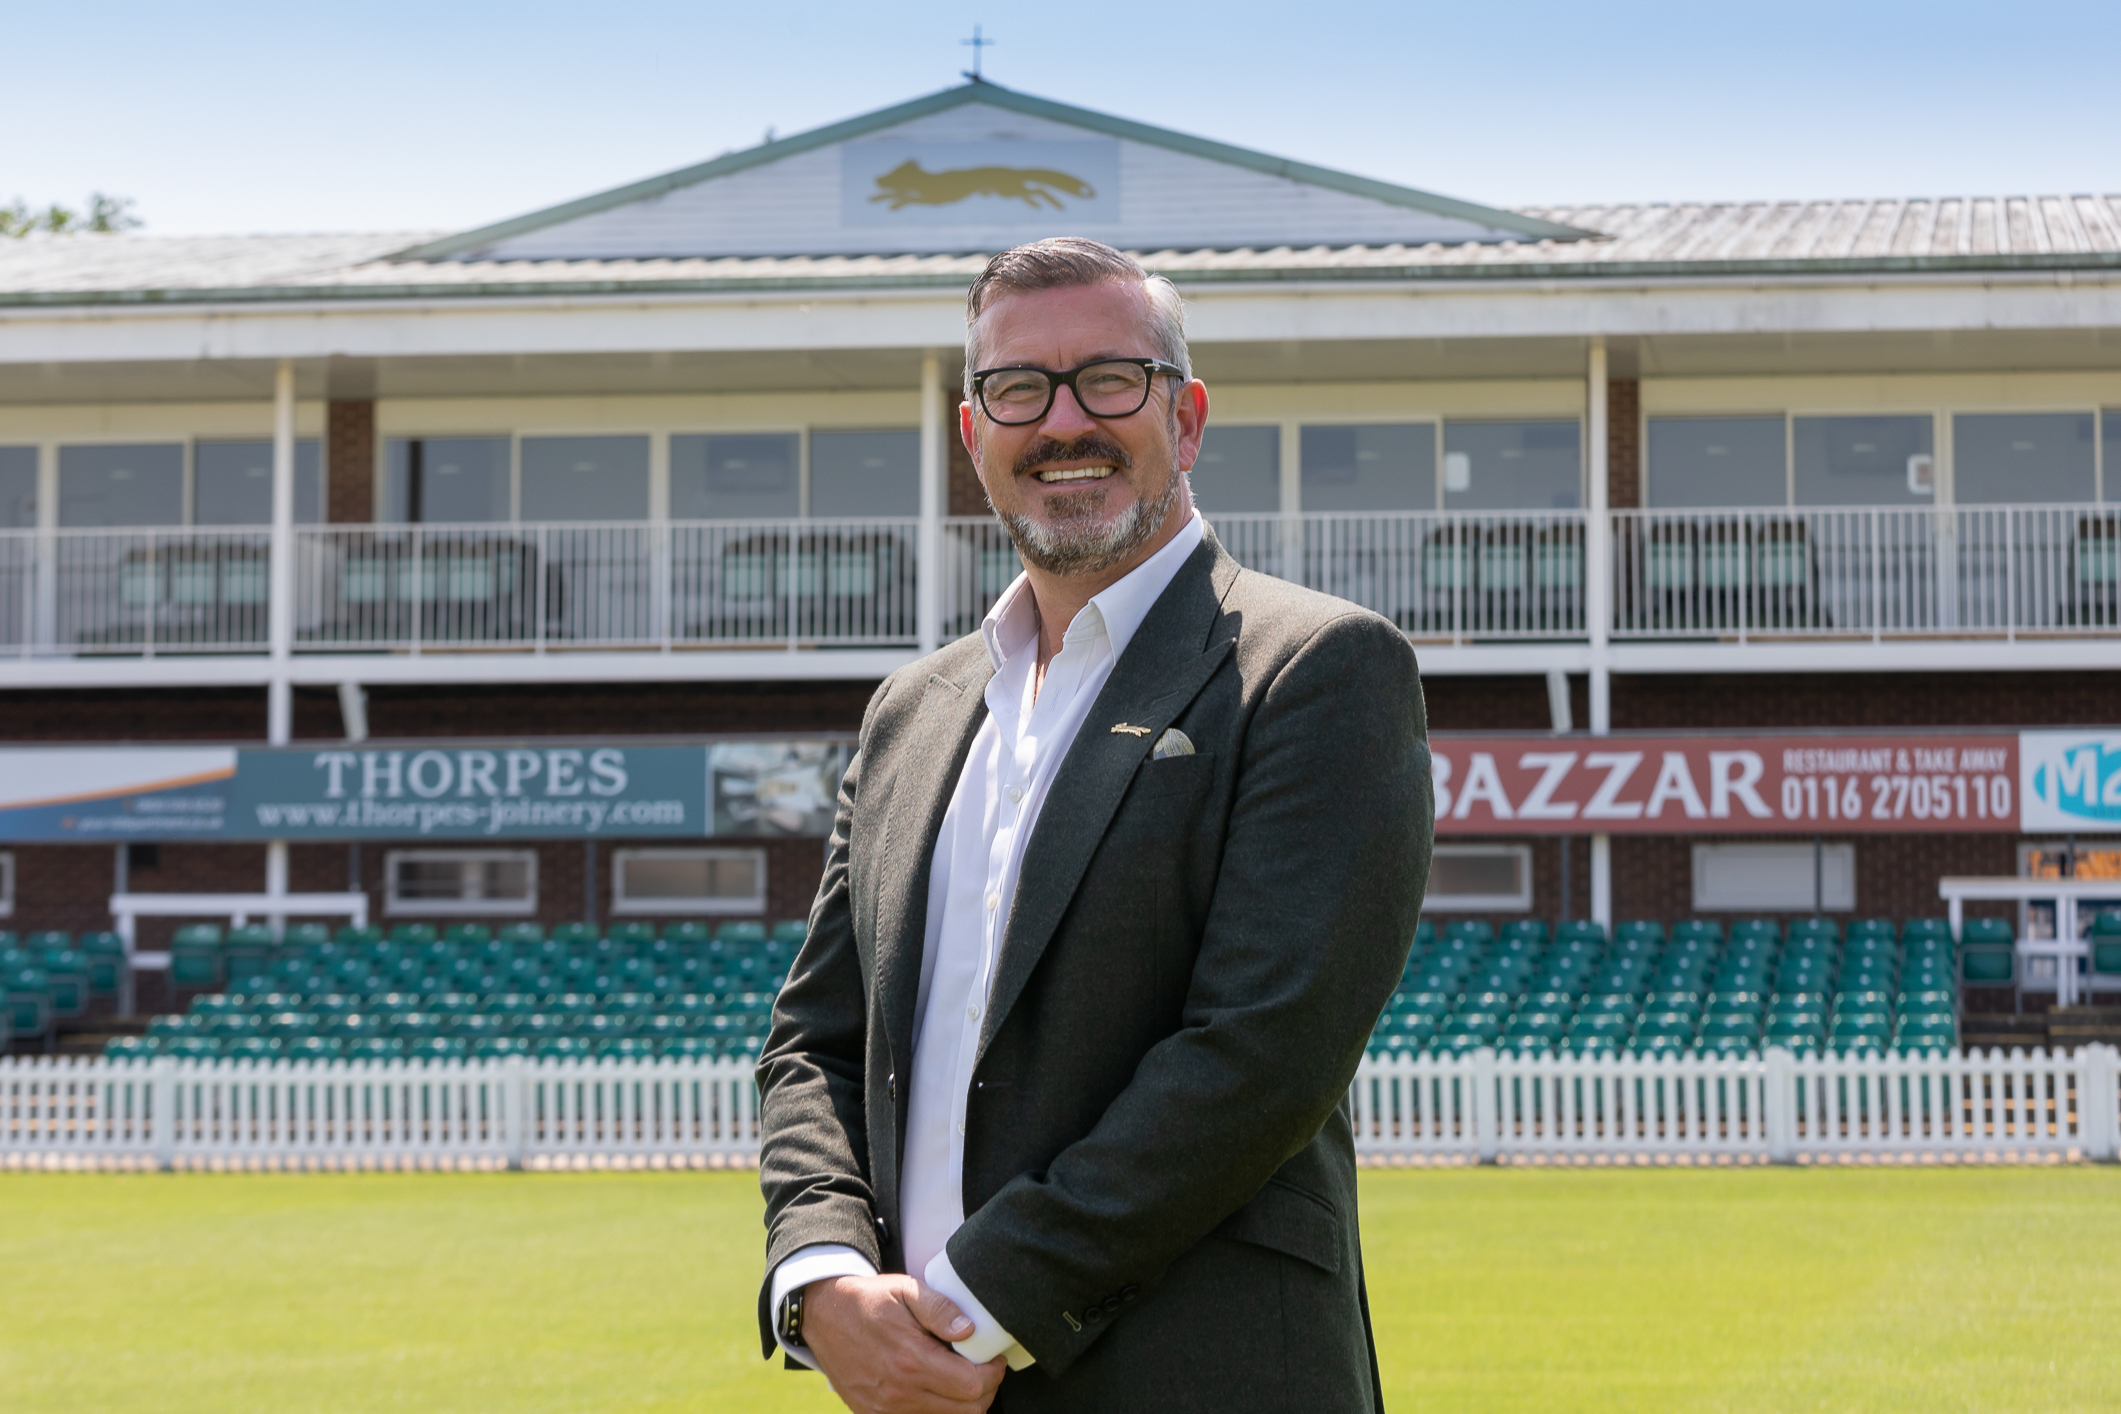 New Leicestershire County Cricket Club CEO Confident of Foxes Future